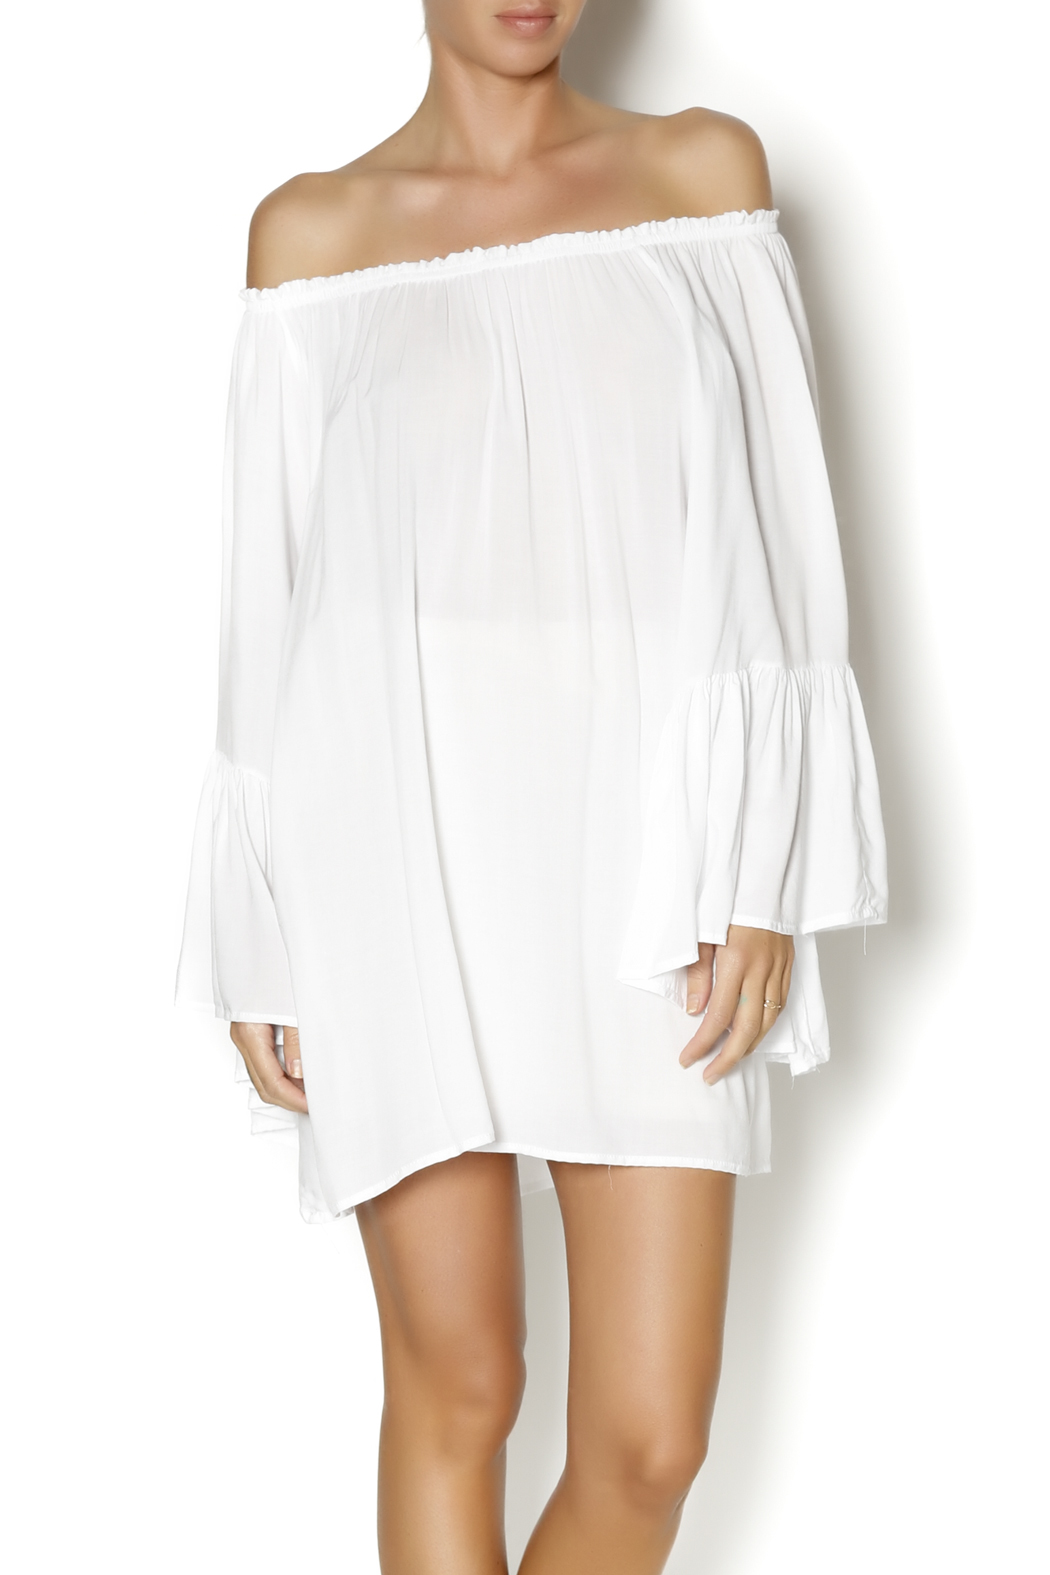 Elan White Boho Top - Front Cropped Image